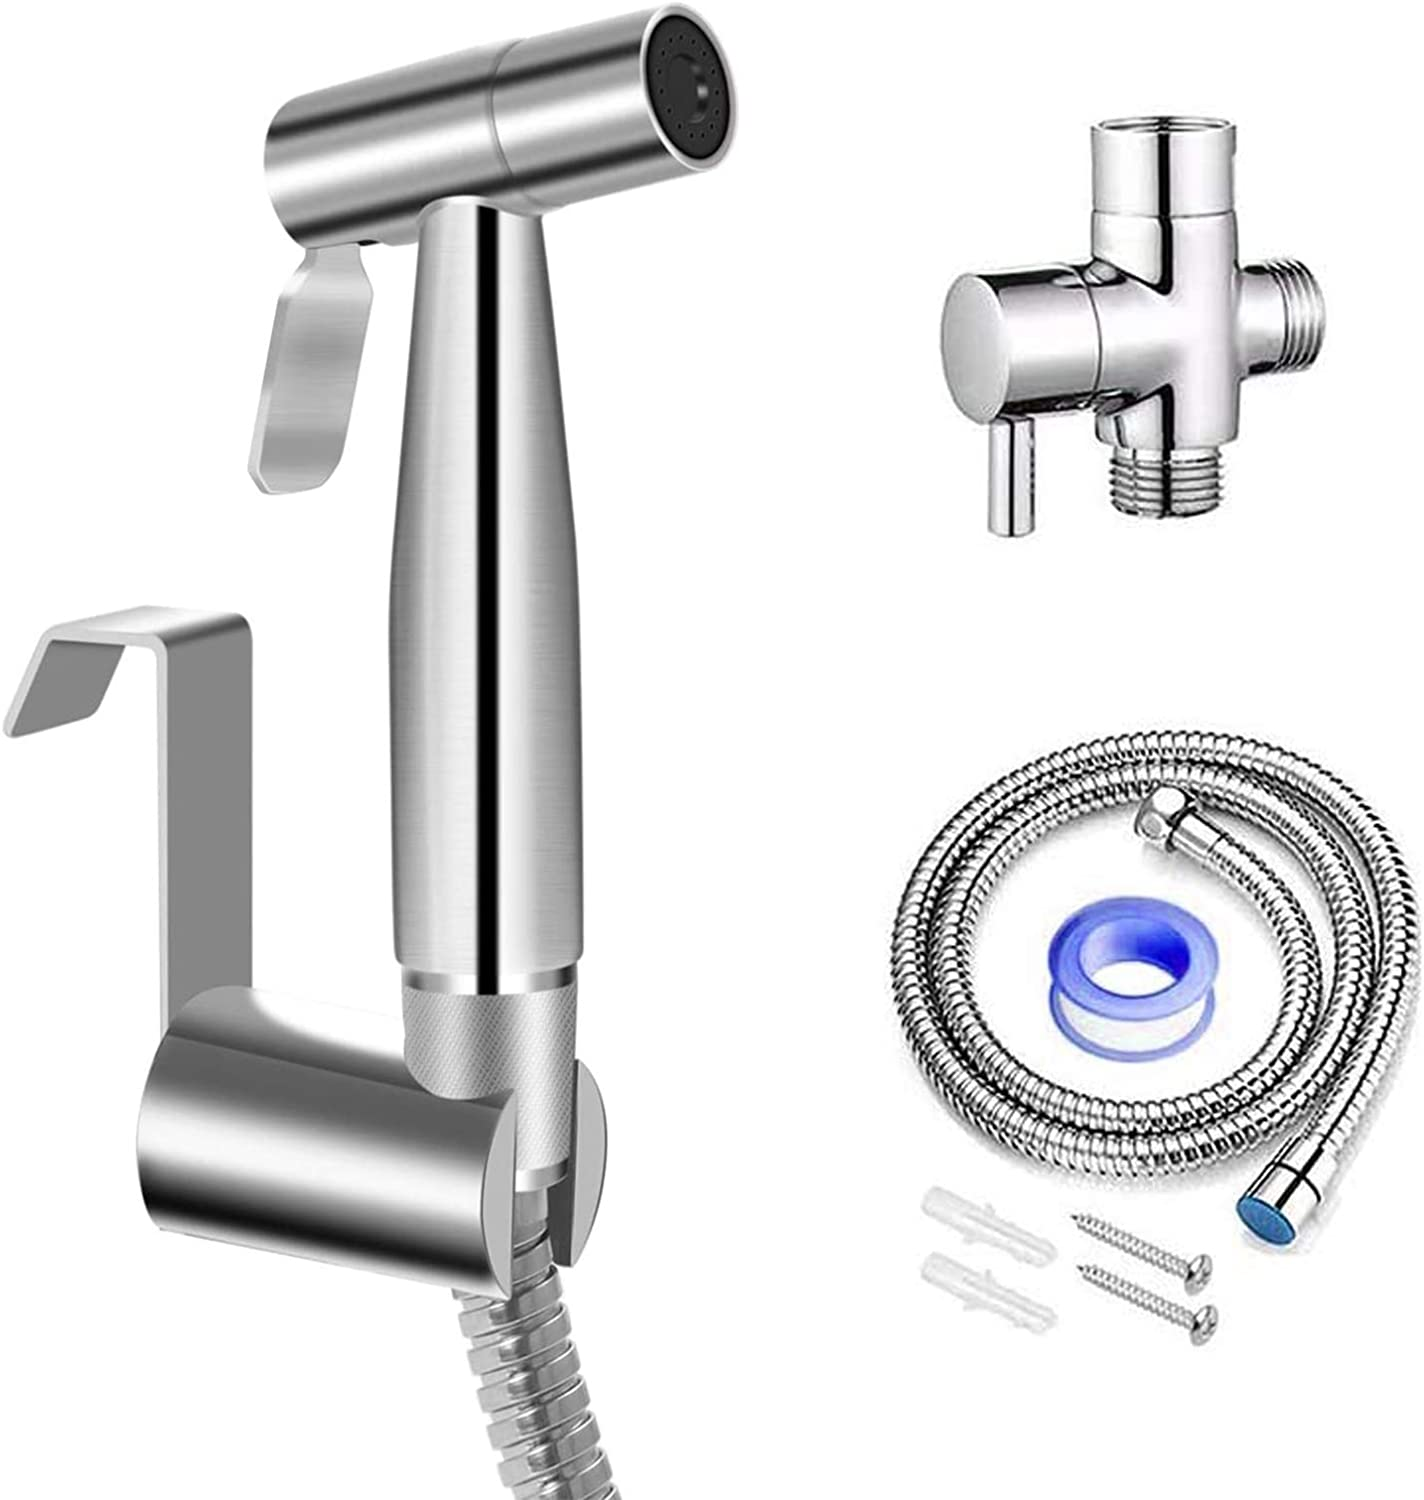 【Upgraded】Cadrim Bidet Sprayer for Toilet- Handheld Stainless Steel Toilet Sprayer Bidet Set for Personal Hygiene Baby Cloth Diaper Cleaning Pet Washing with Anti-Leaking Hose